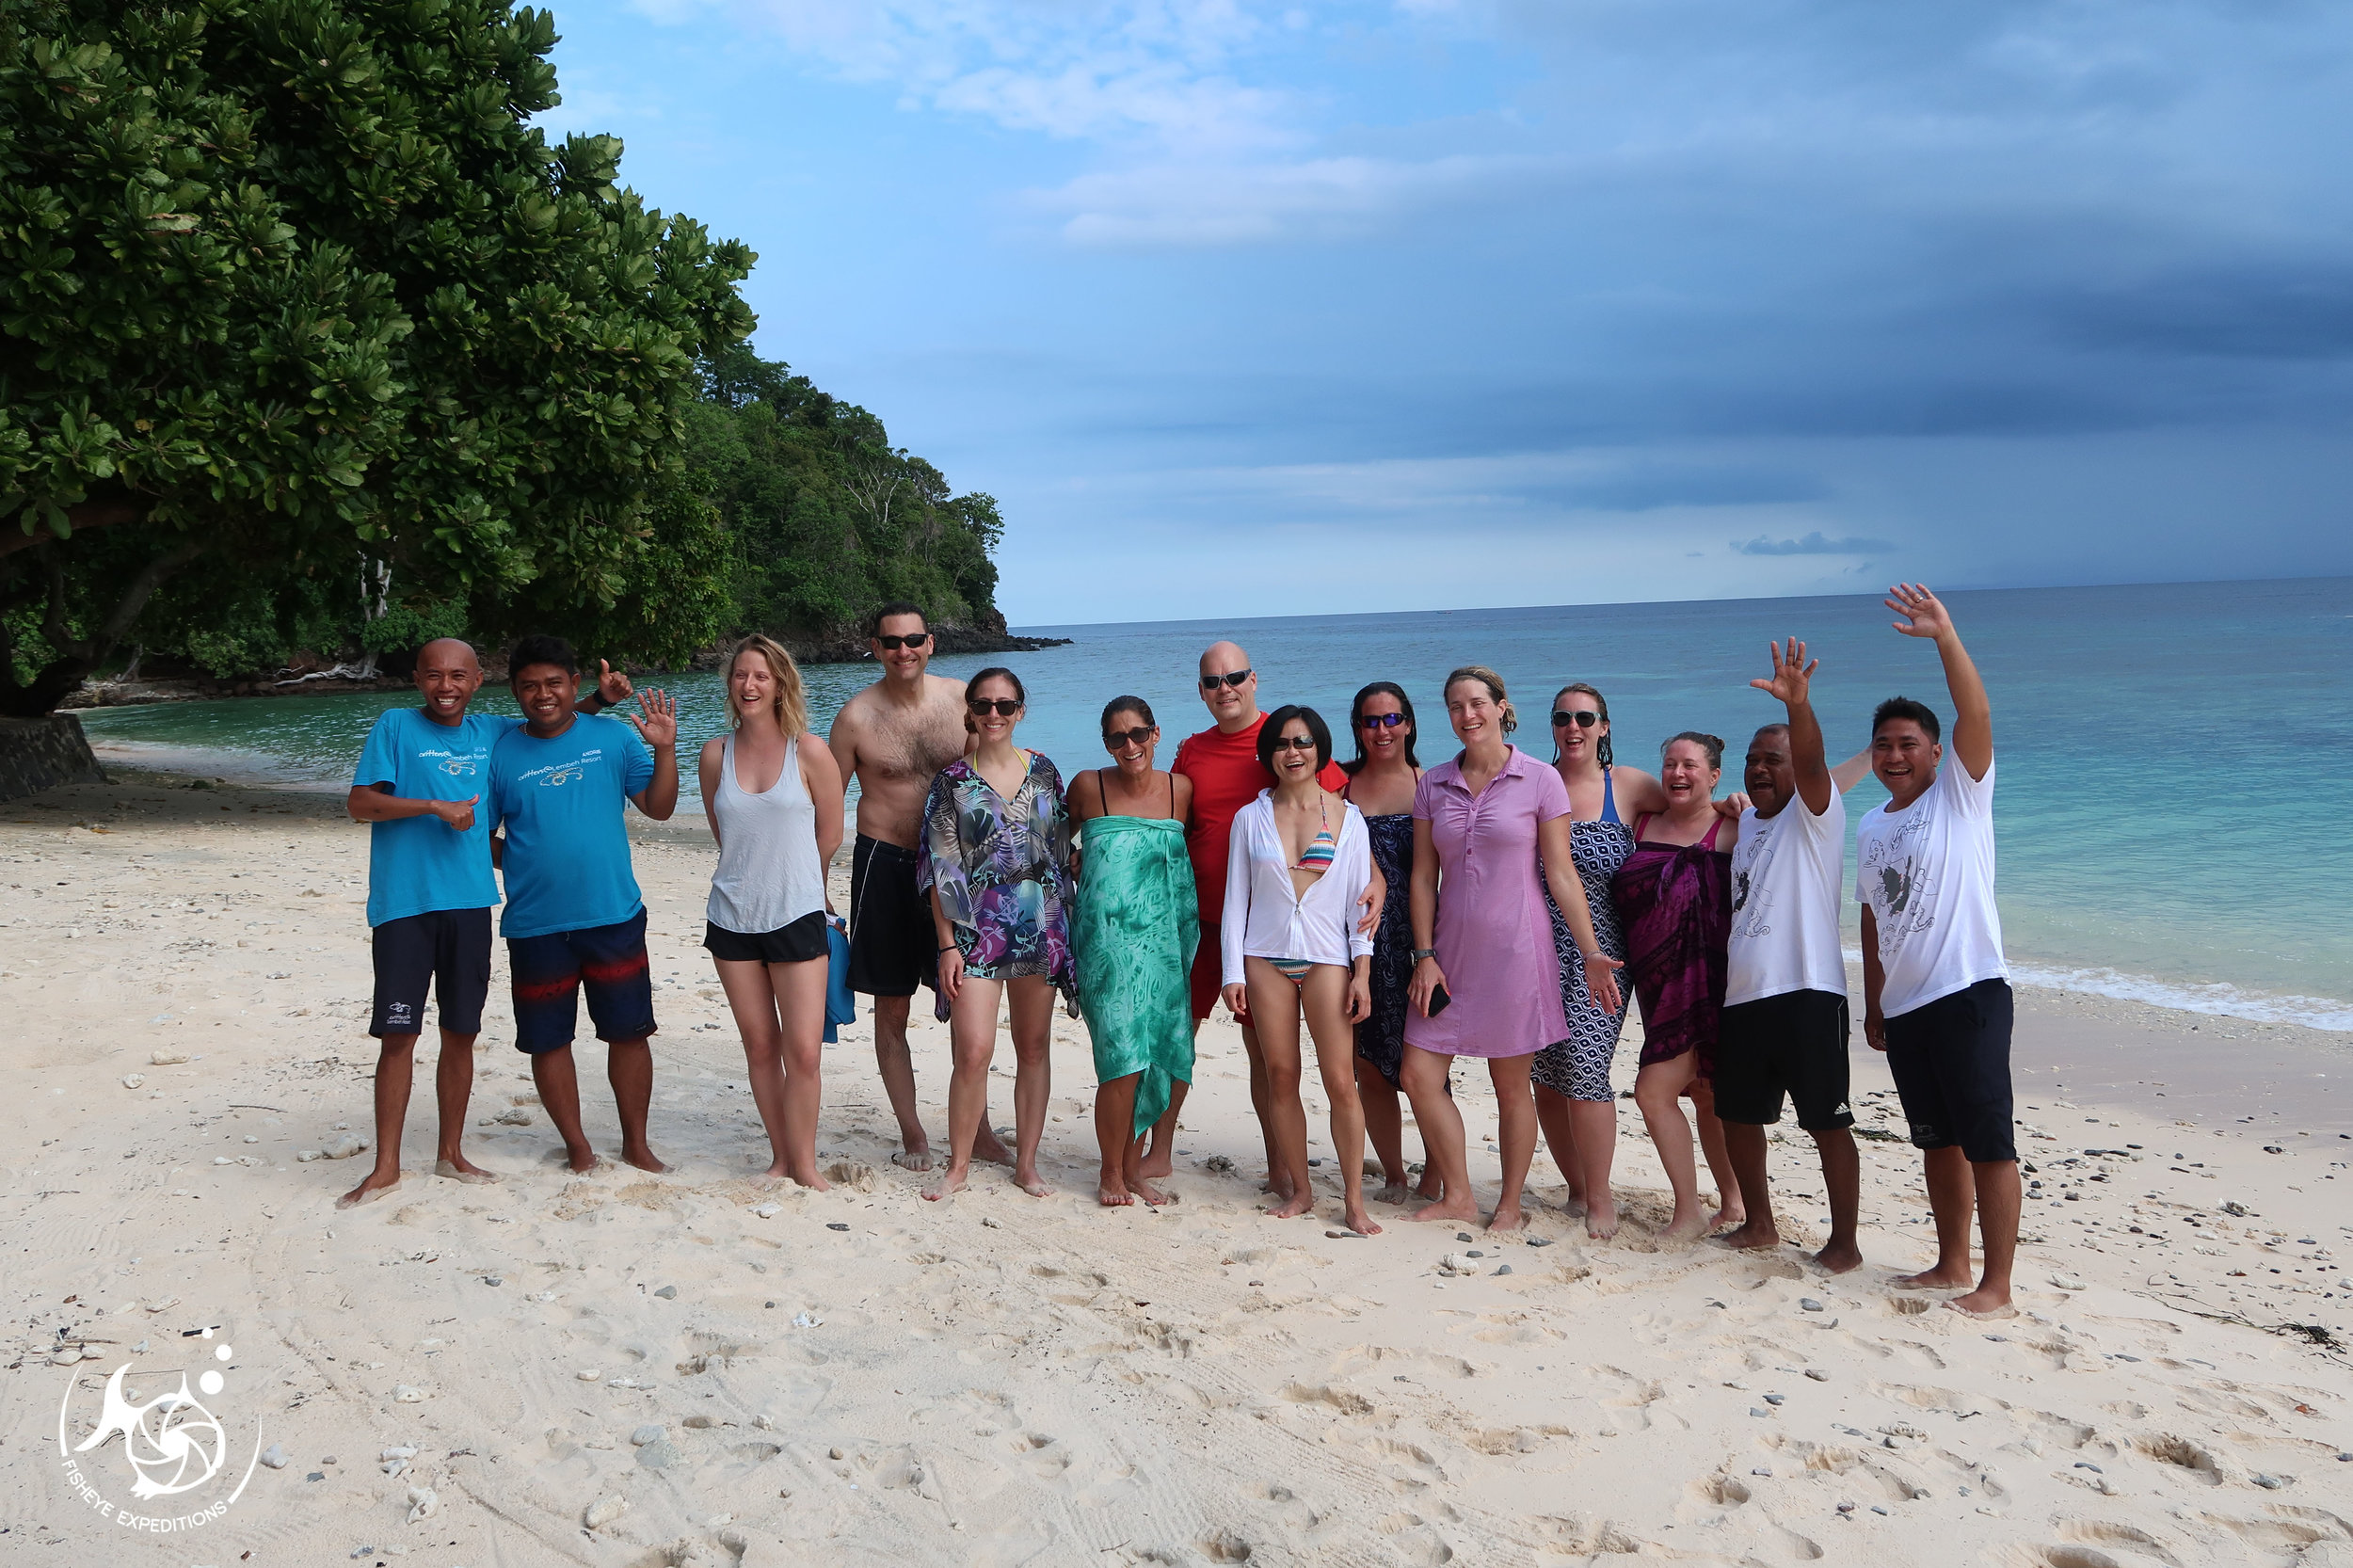 Our group enjoying an awesome full day trip to Bangka Island including 3 dives and lunch at Bangka Resort.